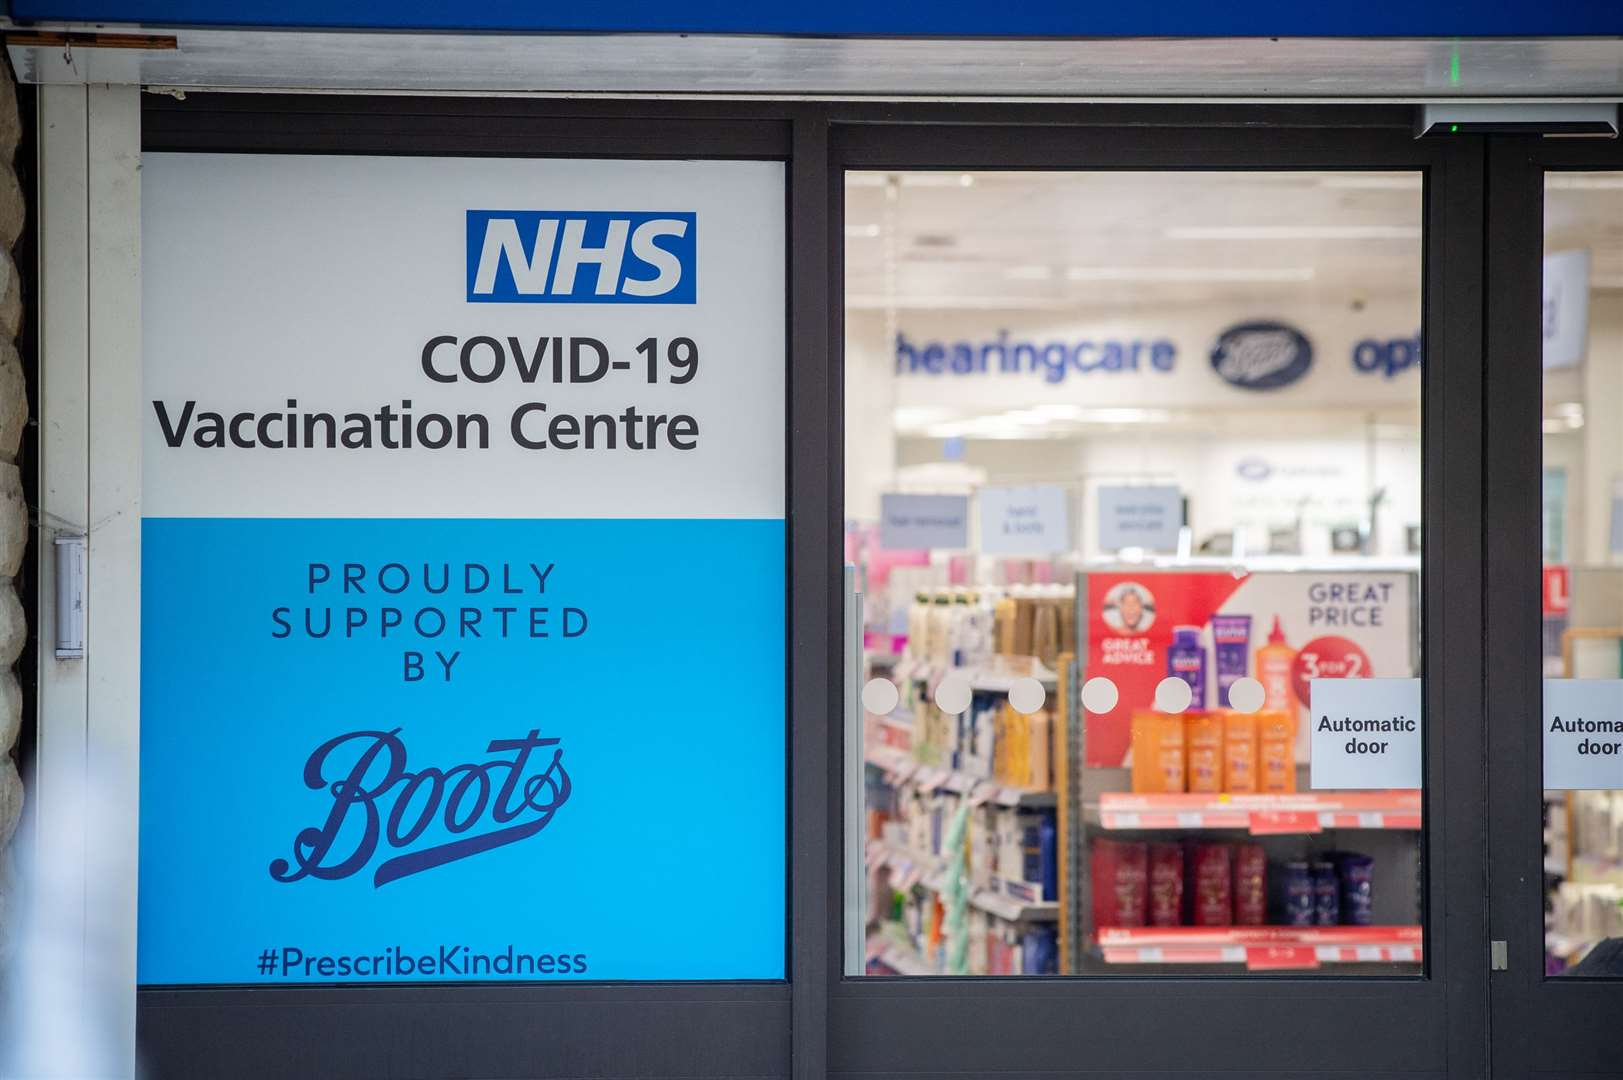 Boots says it will also continue to support the NHS throughout winter with Covid-19 injections